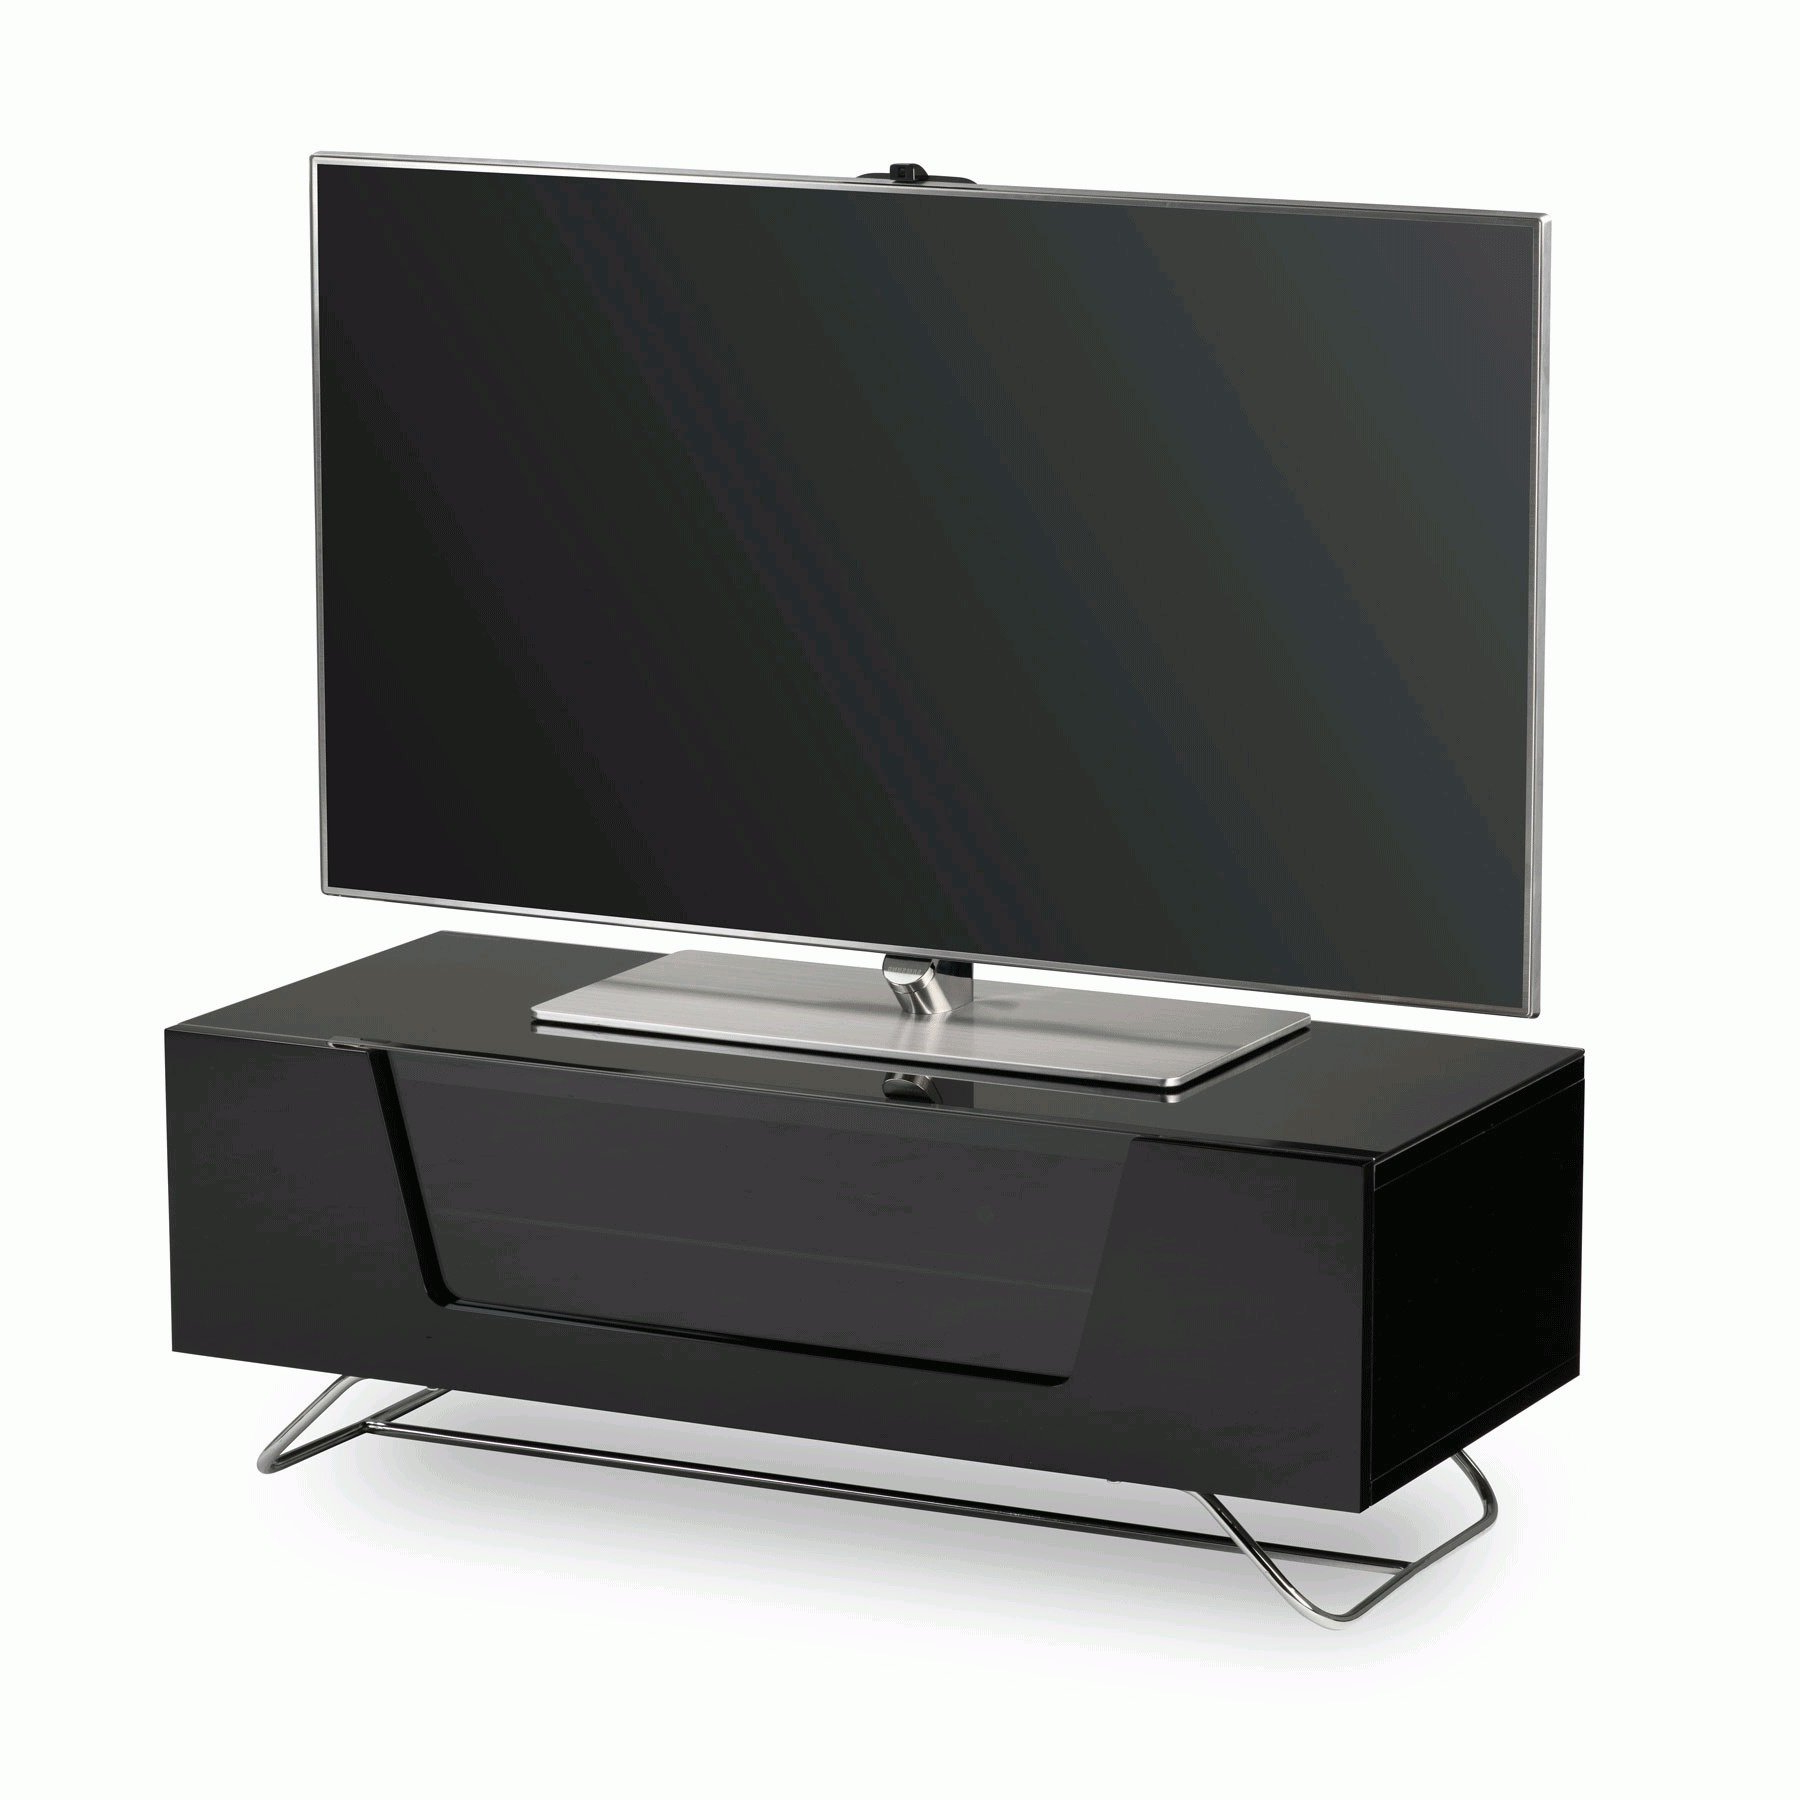 """Tv Stands For Tvs Up To 50"""" Within 2017 Alphason Chromium 2 100cm Black Tv Stand For Up To 50"""" Tvs (View 18 of 25)"""